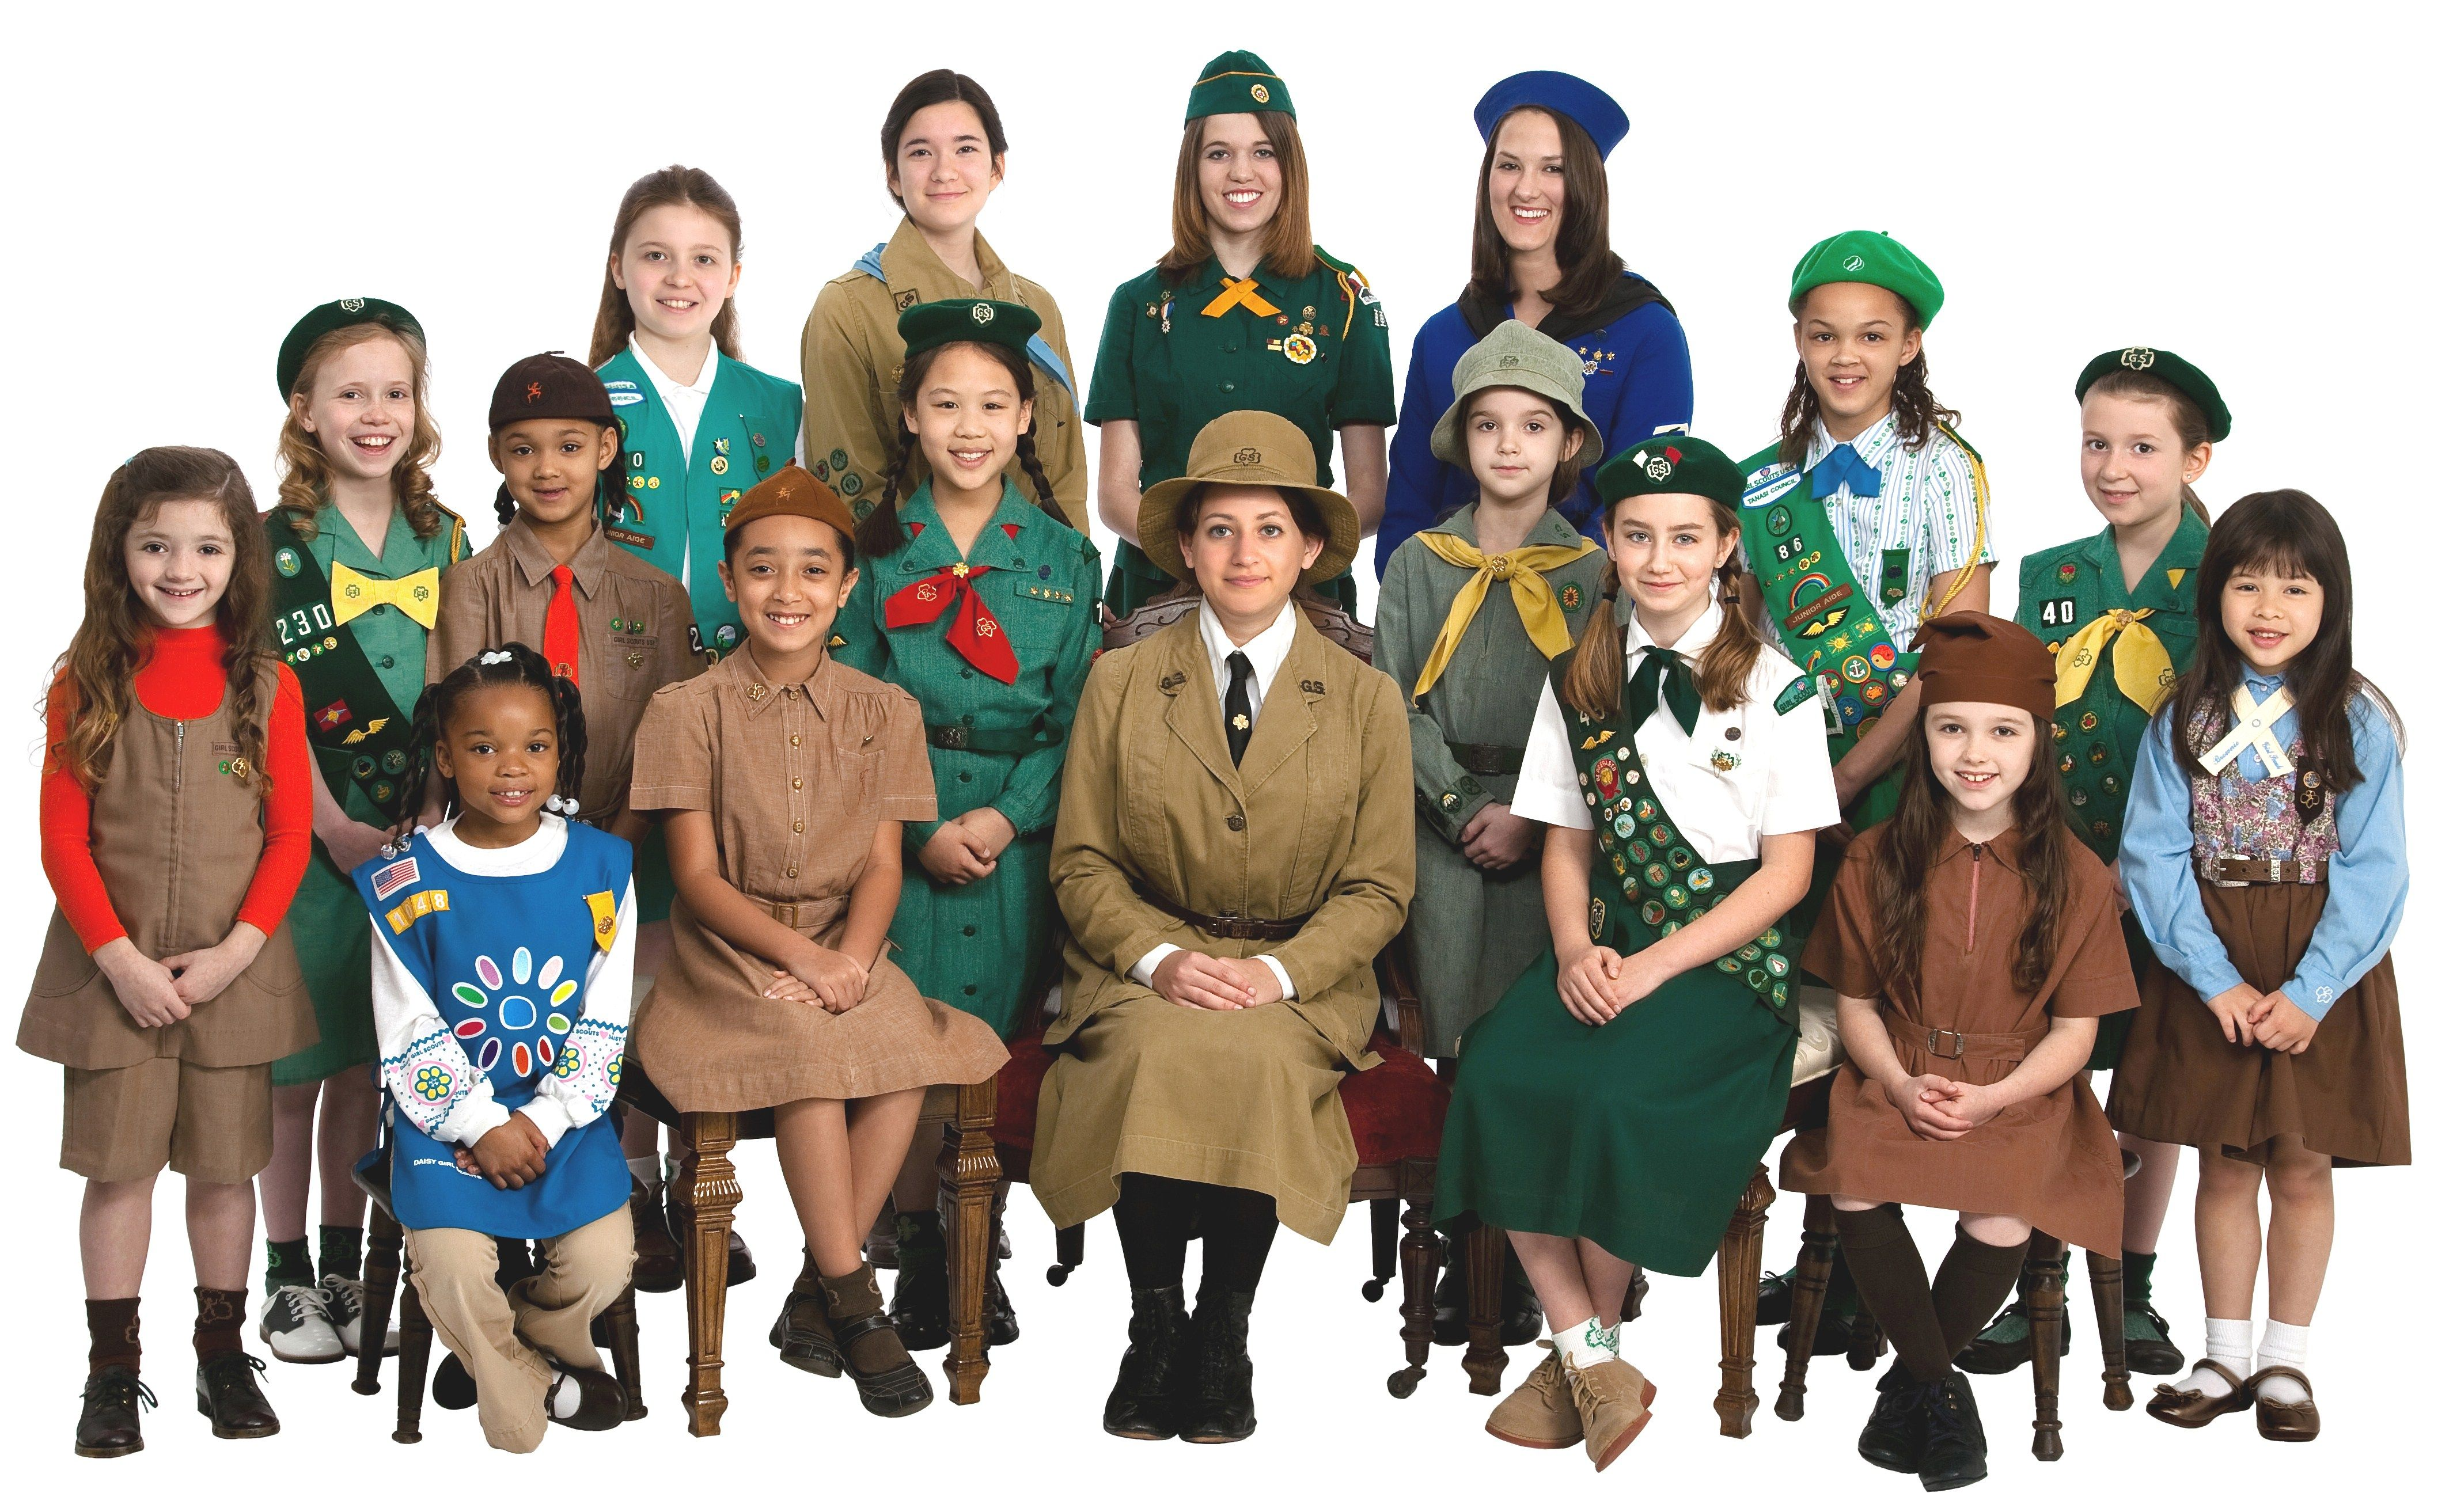 girl scouts   google search girl scout sunday pinterest